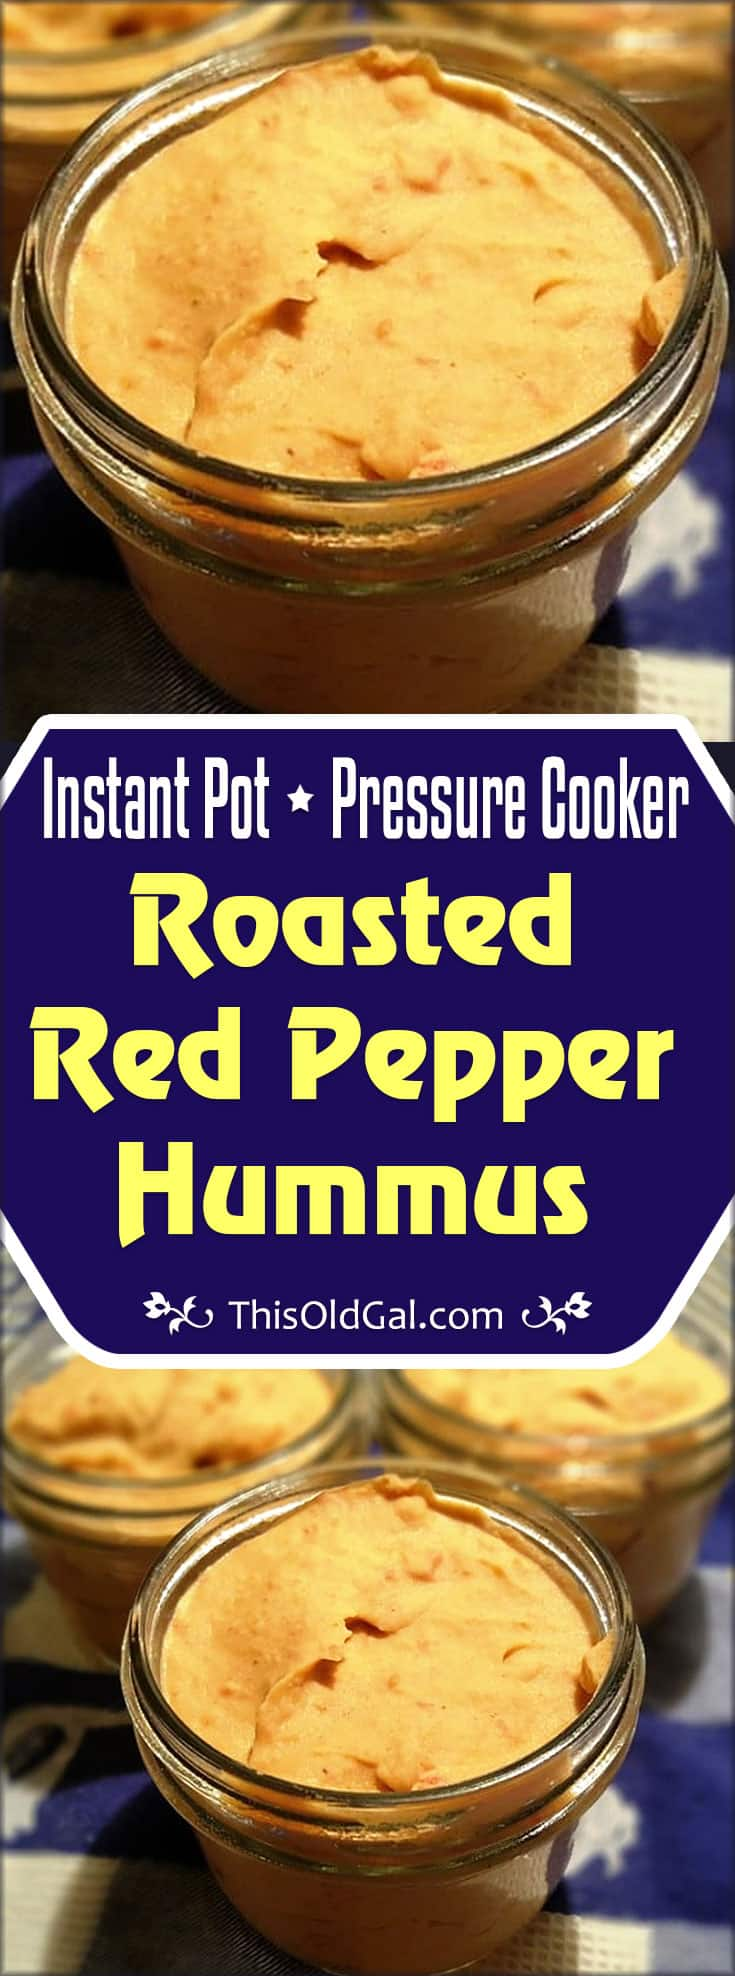 Pressure Cooker Roasted Red Pepper Hummus